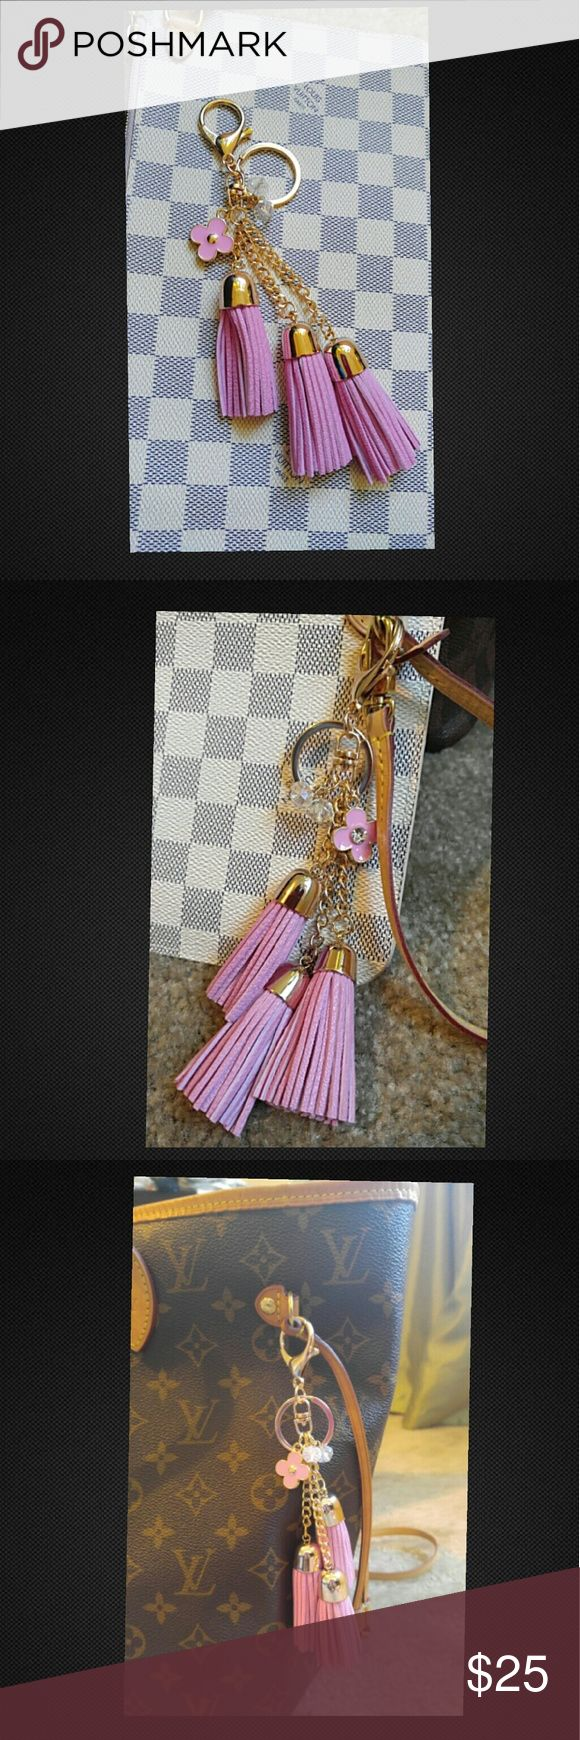 Rose ballerine pink purse charm keychain bag charm New rose ballerine tassel pink purse charm bag charm keychain. No brand, just a cute accessory for your purse. So pretty! Rhinestone crystal in the center of the flower, two crystal like balls, and three tassels. Will look pretty on any Louis Vuitton purse, I set it next to the damier azur, damier ebene, and monogram print to show it's versatility. Tags: Louis Vuitton, MCM, Coach, Michael Kors, Celine, Chanel, Gucci, Tory Burch Louis Vuitton…